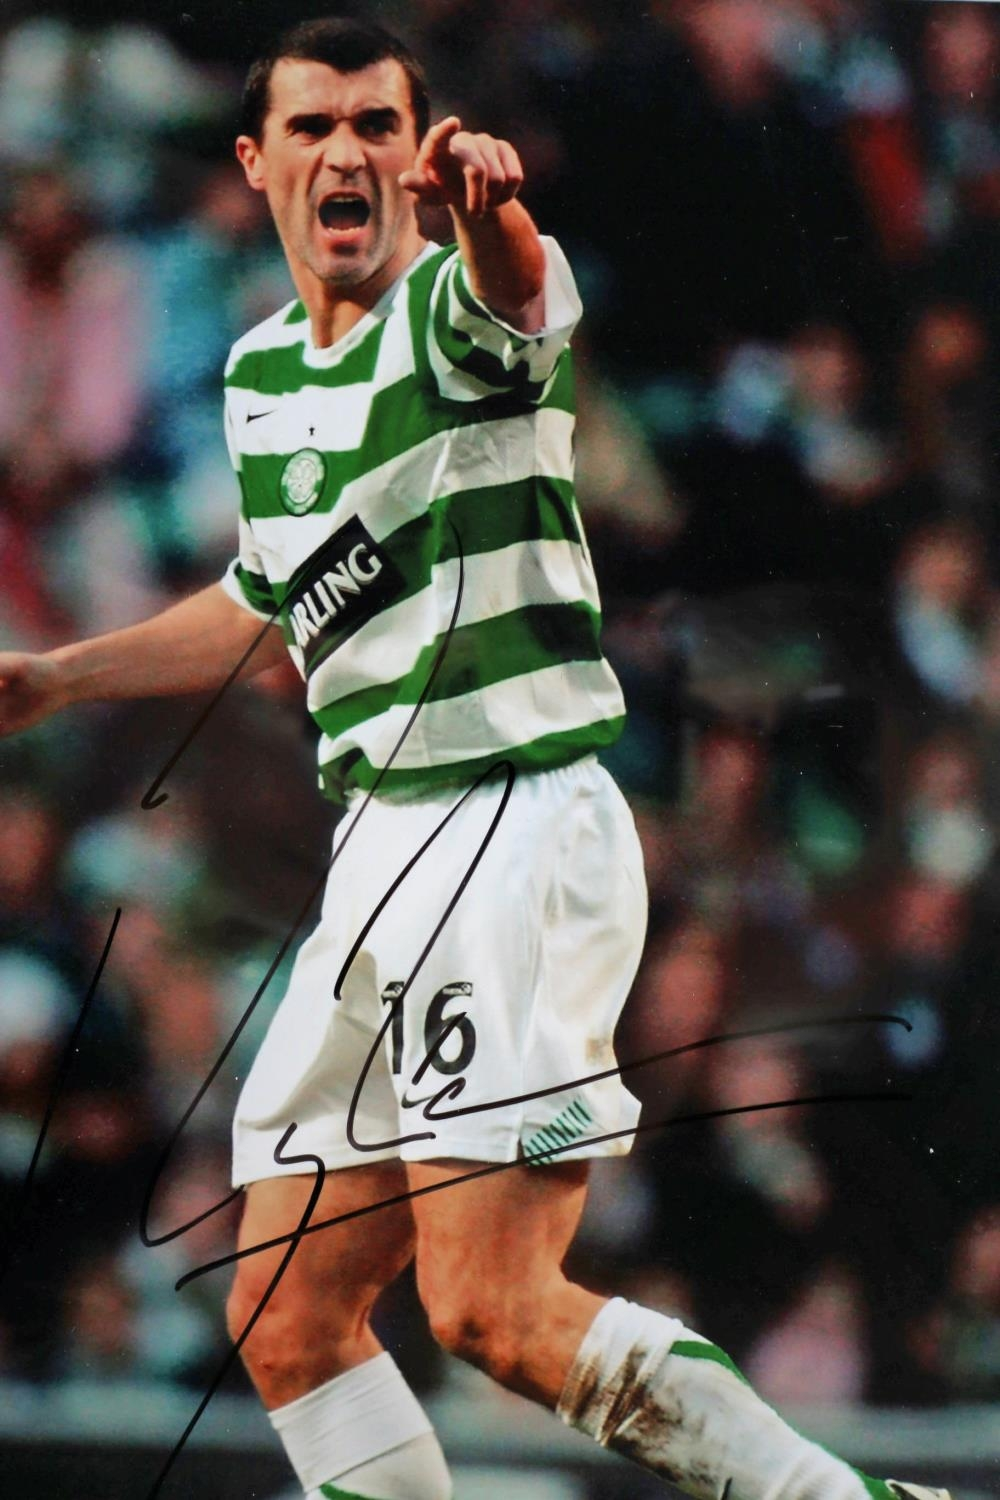 Football 2006 a colour photograph of Roy Keane, in Celtic strip, signed by Keane; together with a - Image 2 of 5